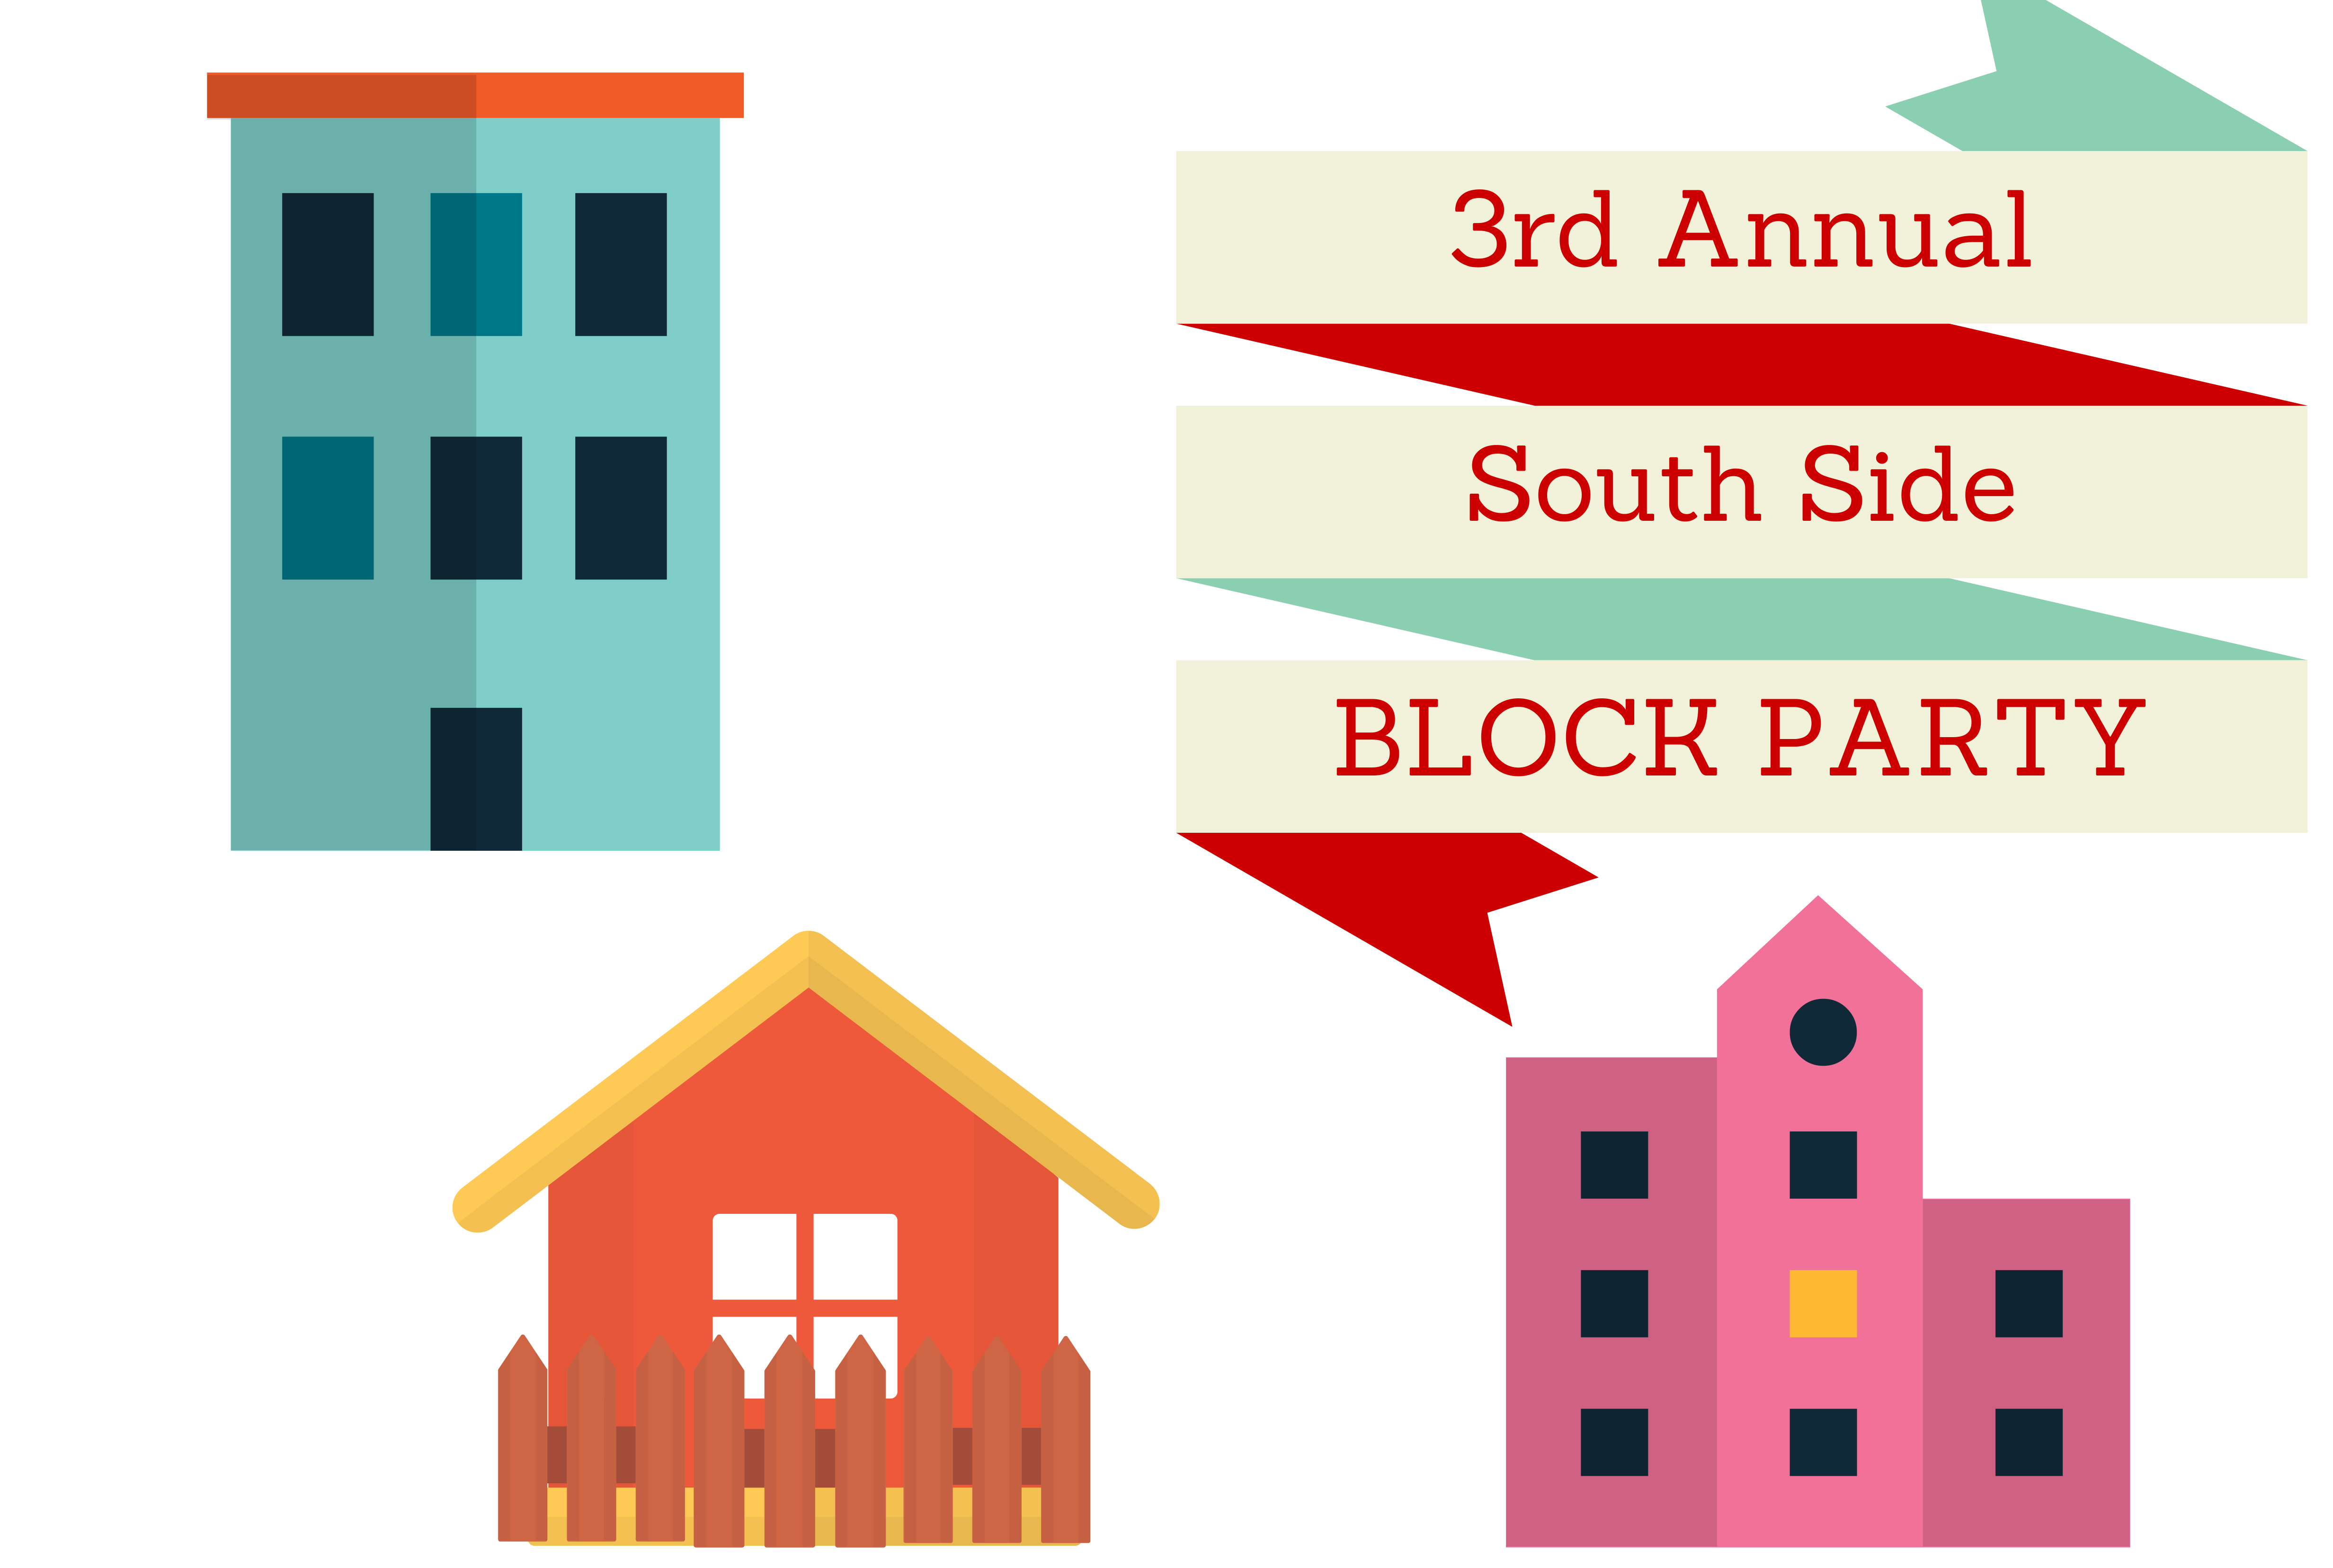 South Side Block Party.